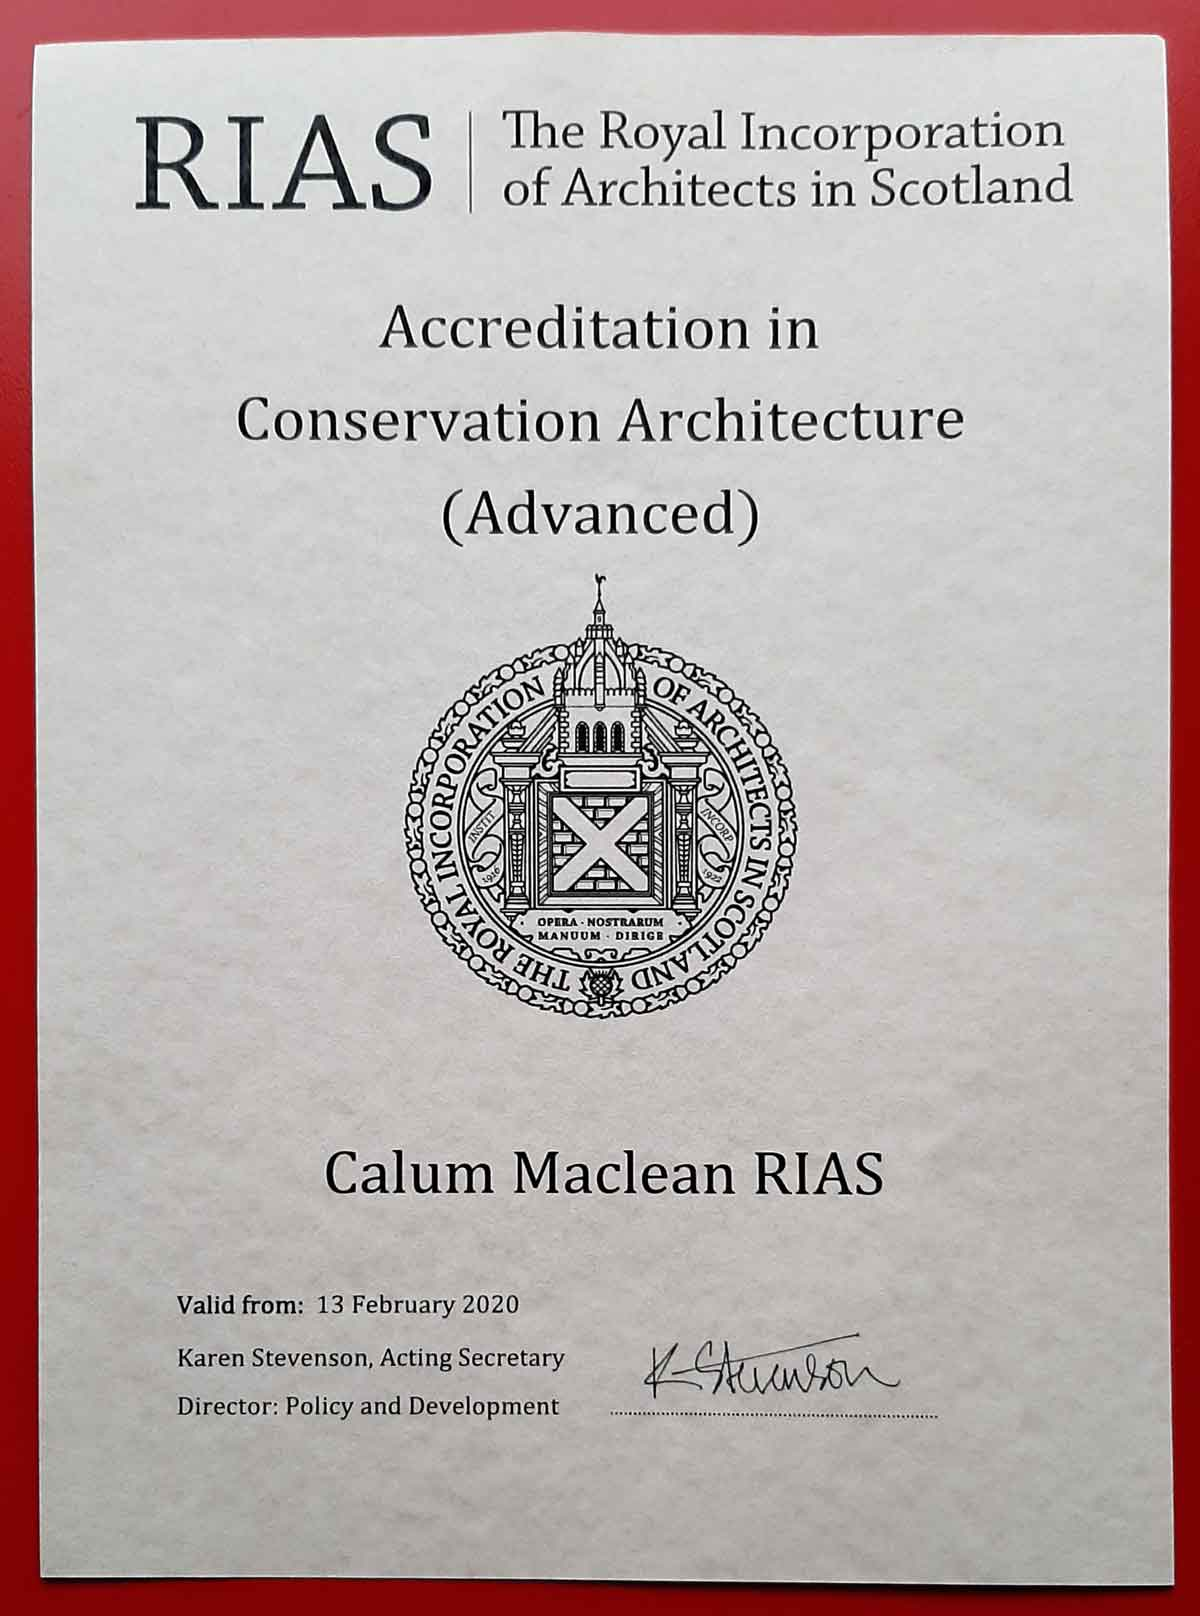 Certificate of Advanced Accreditation in Architectural Conservation from the RIAS